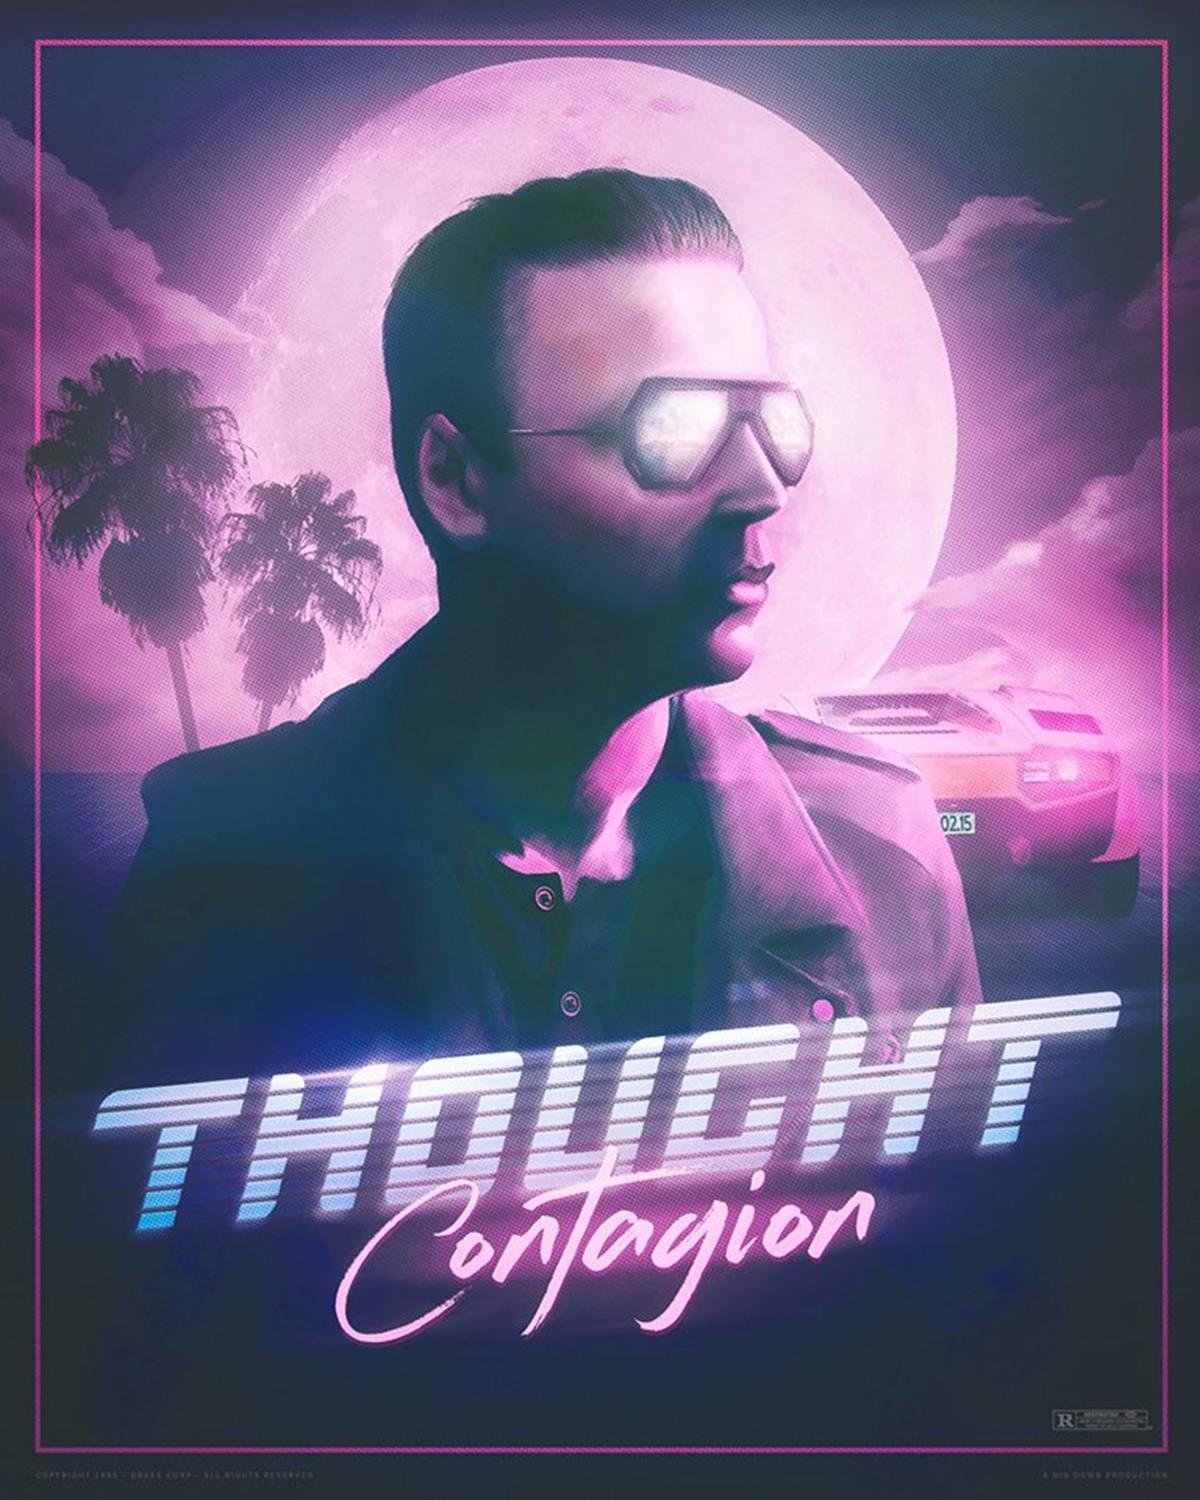 Lead bassist Chris Wolstenholme in the poster for new Muse single 'Thought Contagion'. Image via Facebook/Muse